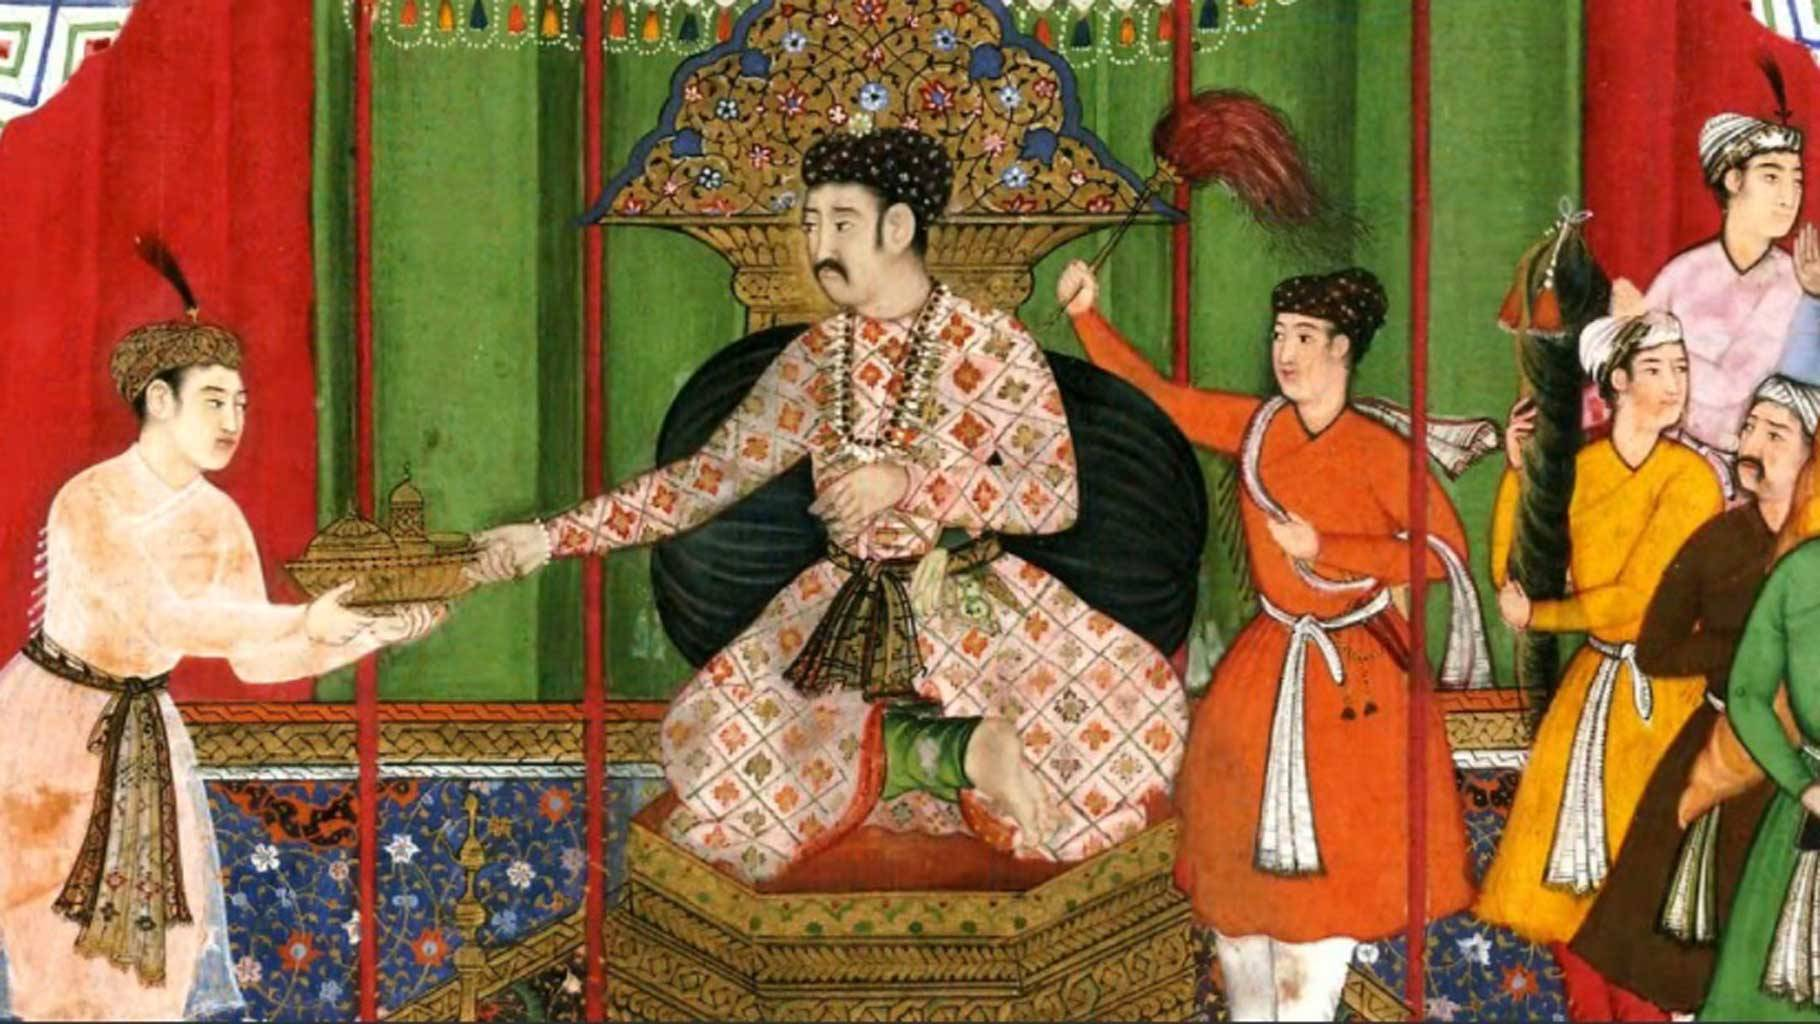 No, Mughals didn't loot India. They made us rich